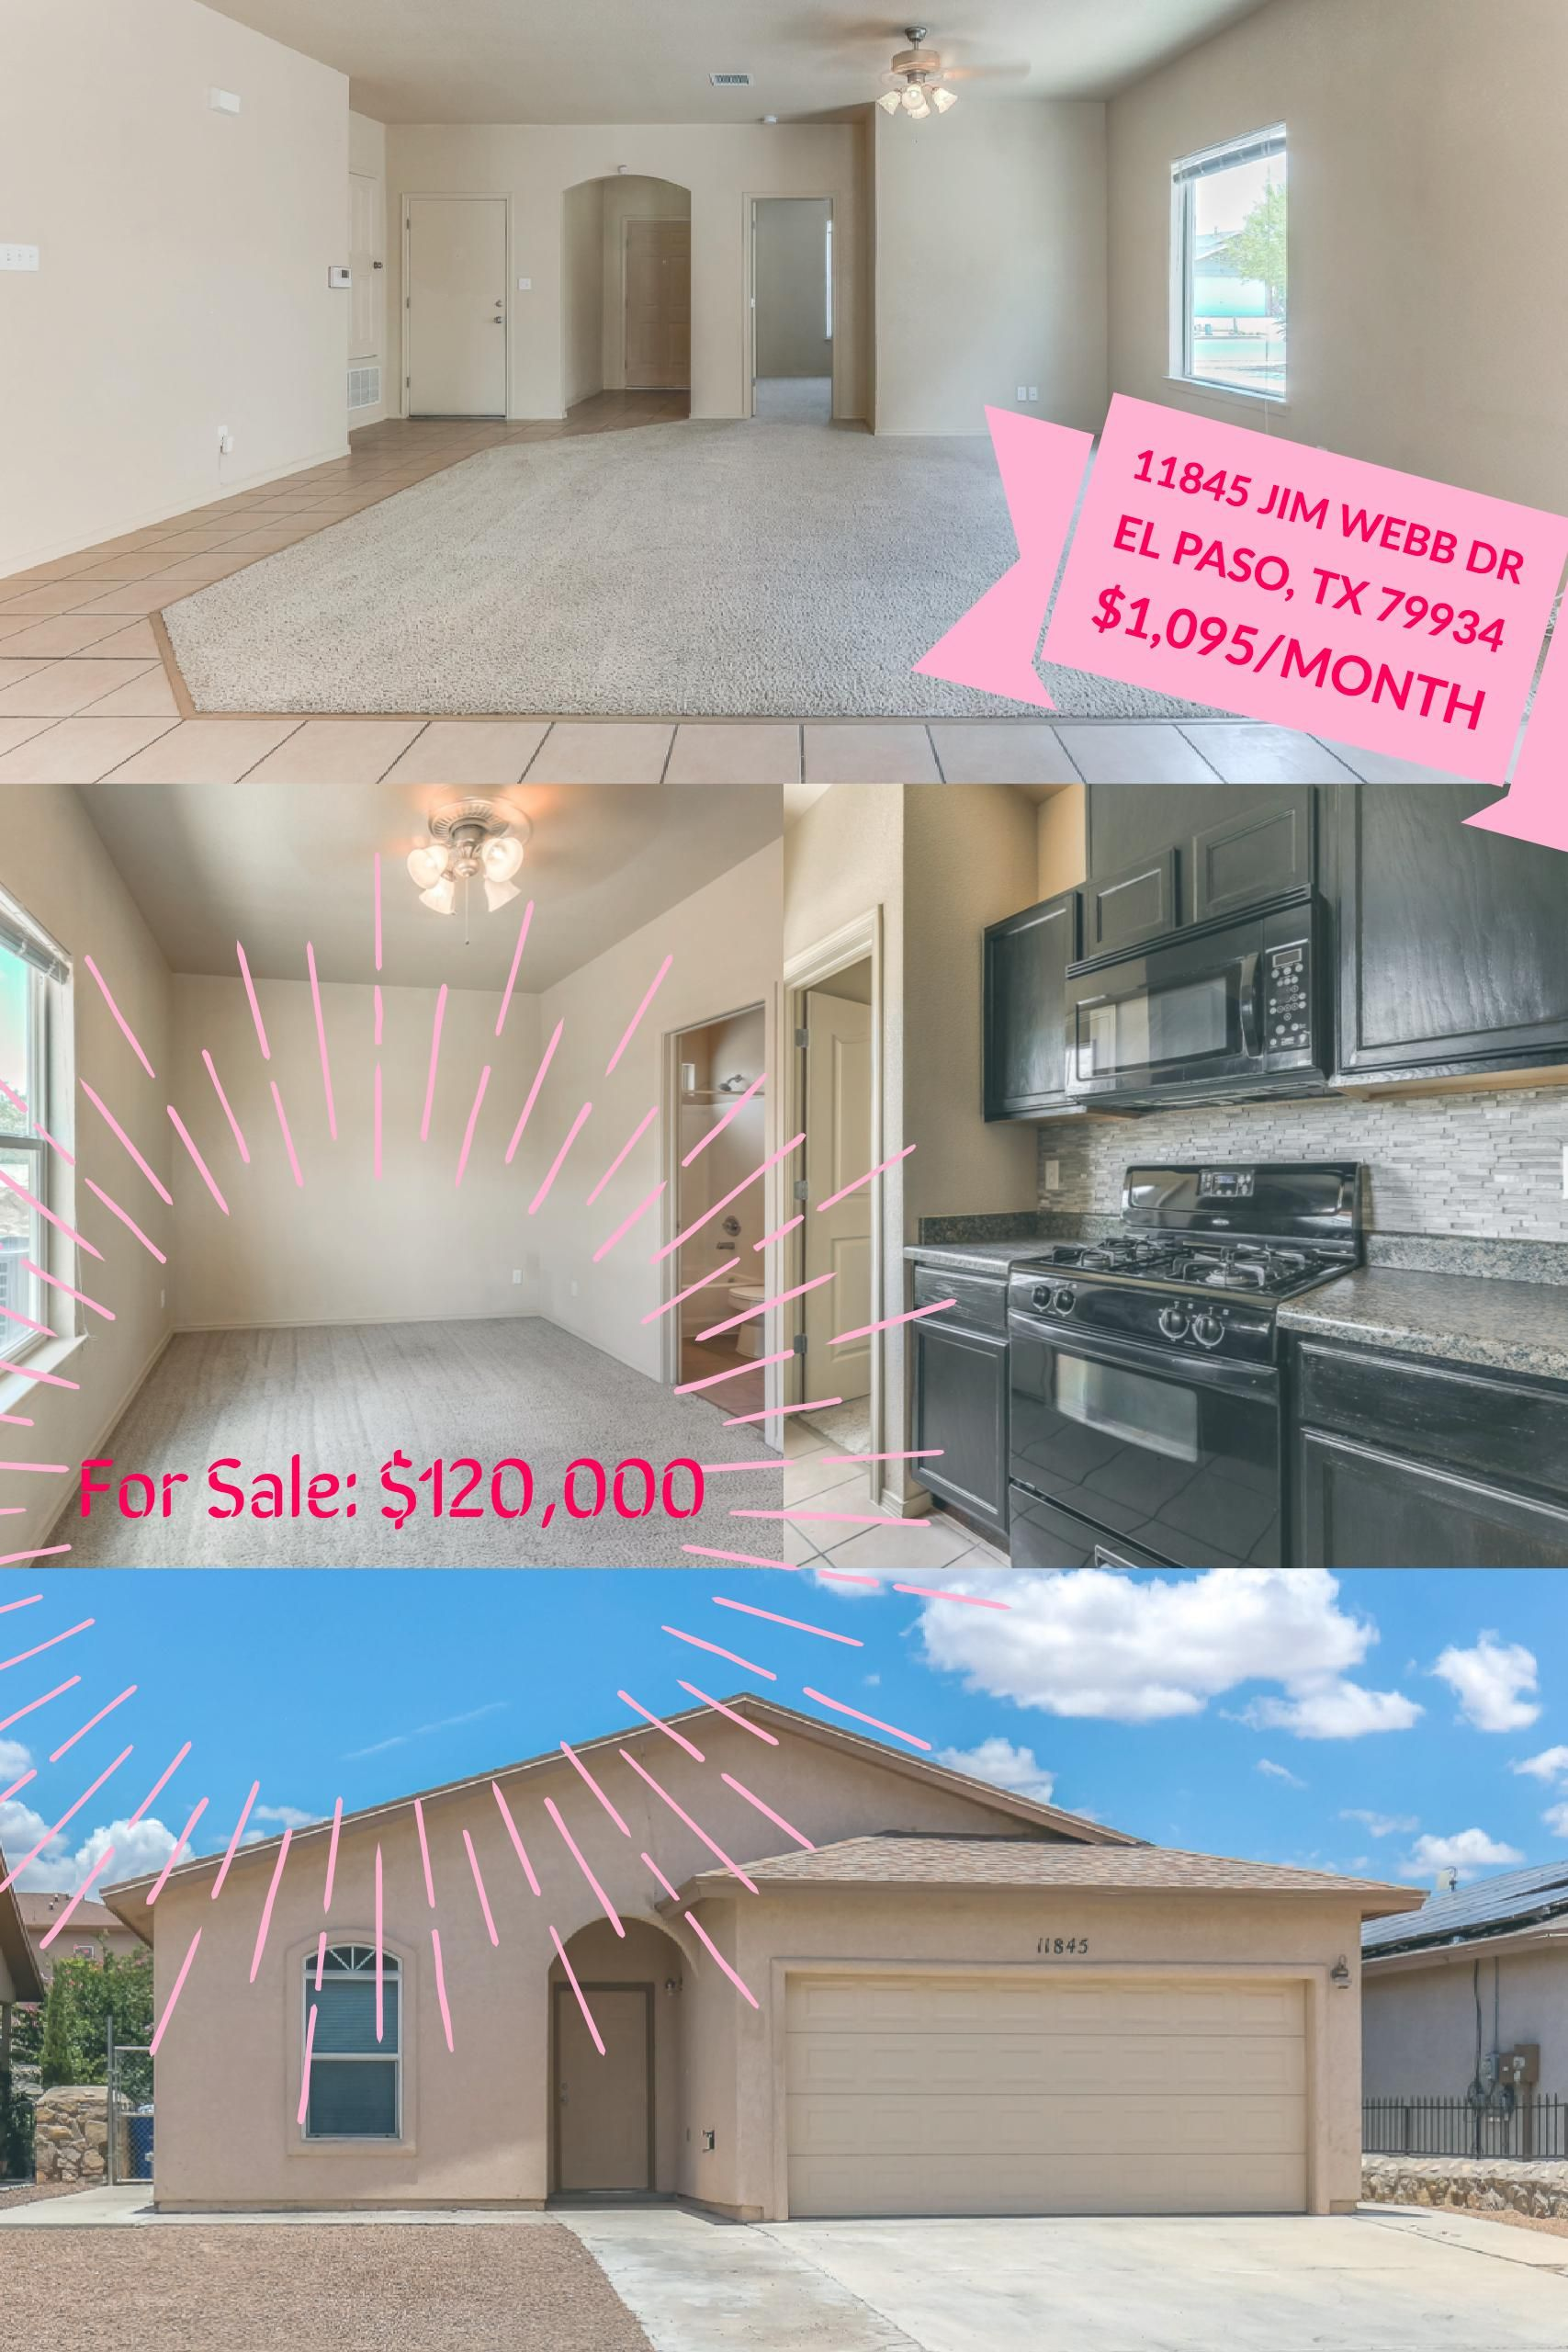 Home Is Available With 3 Options For Rent Lease W Option To Purchase And For Sale You Choose Onerealtyelpaso Elpaso Elpa Home Buying Bachelor Pad Home